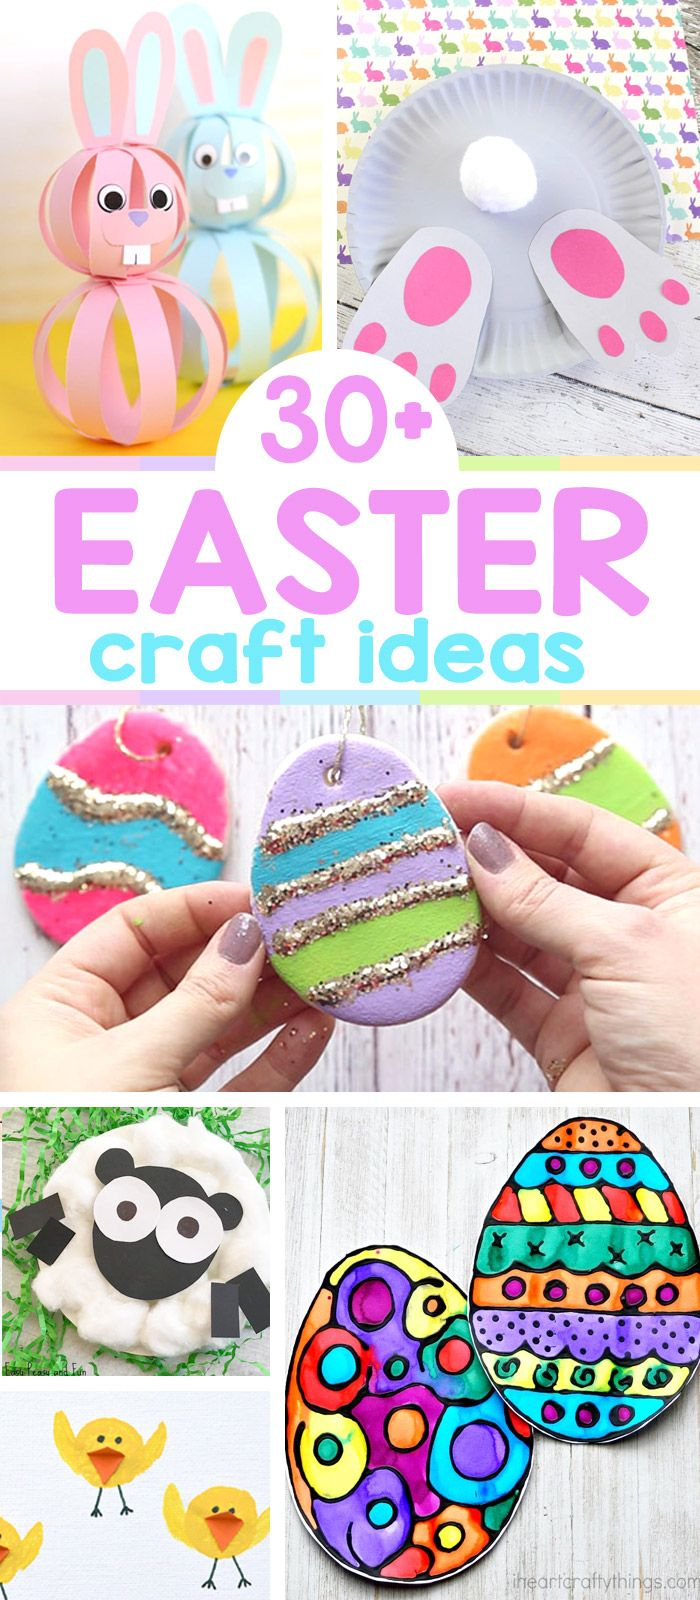 The best Easter crafts for kids to make this year! From fluffy bunnies to adorable chicks! #easter #eastercrafts #kids #easypeasyandfun #kidsactivities